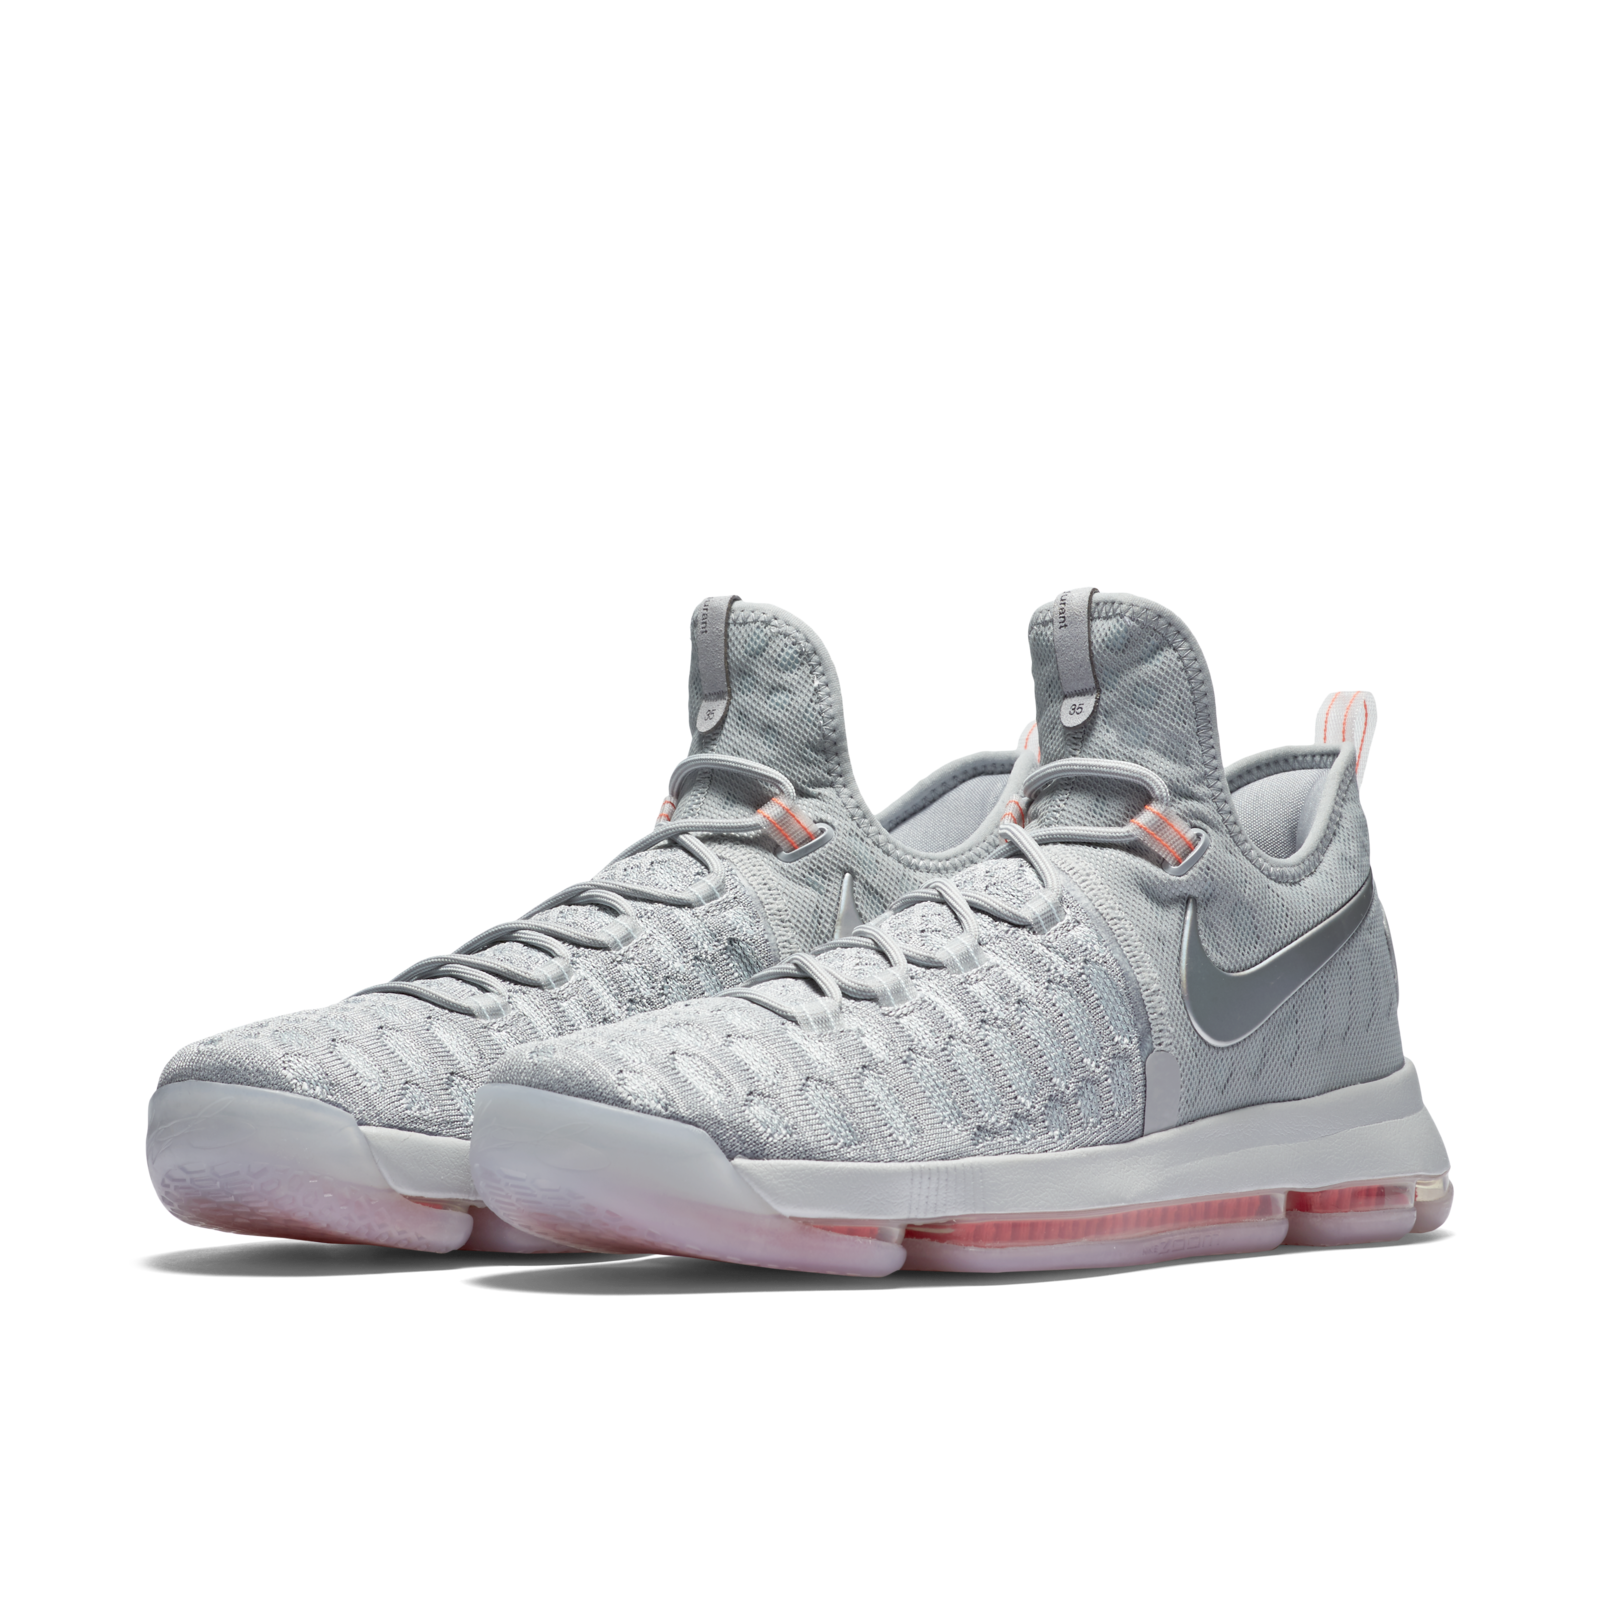 Nike Launches the KD9